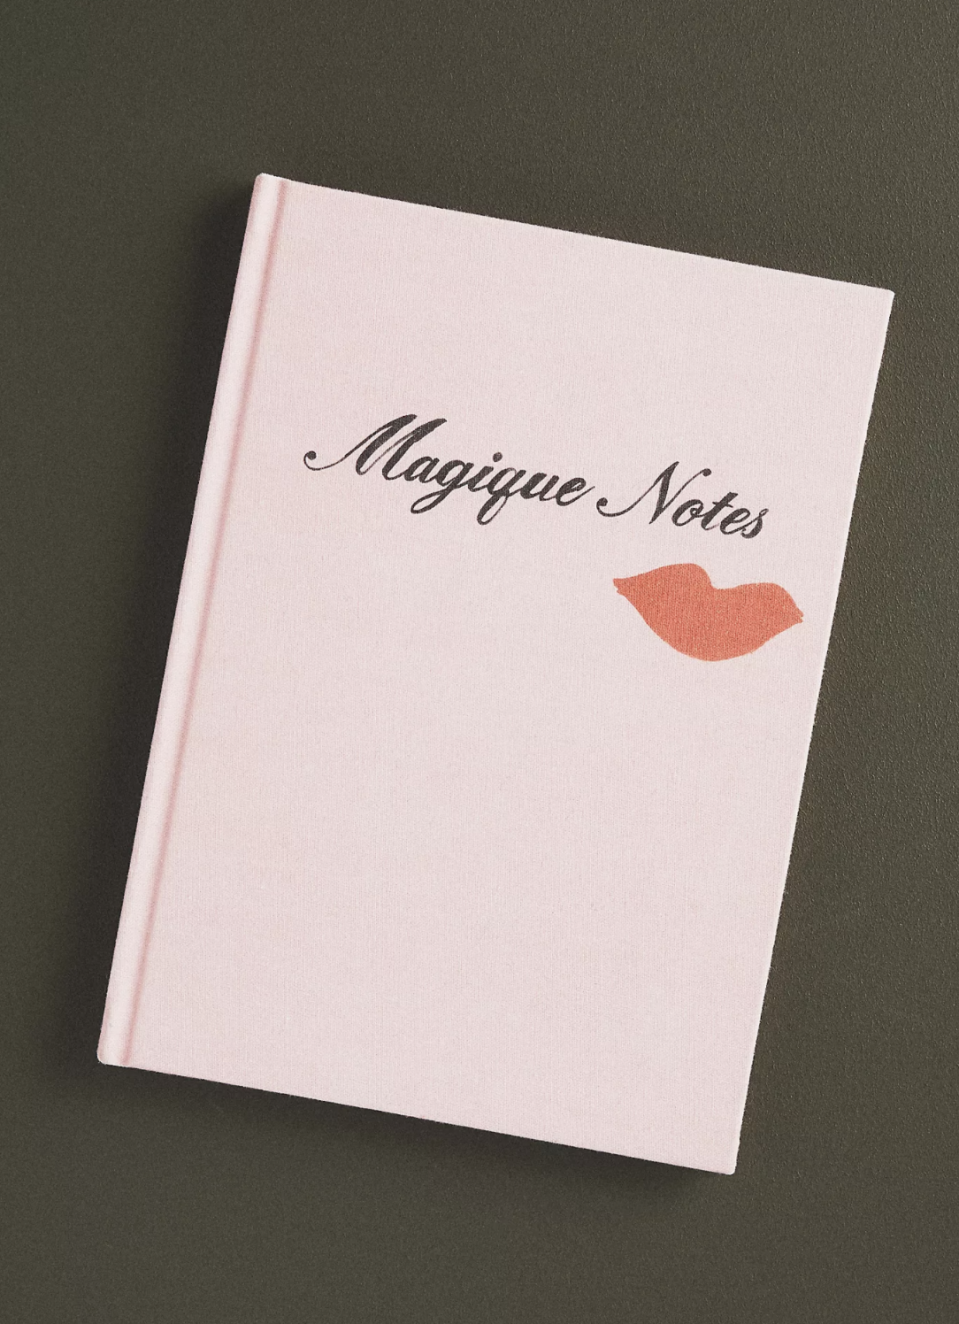 Hotel Magique for Anthropologie Cahier Journal. Image via Anthropologie.